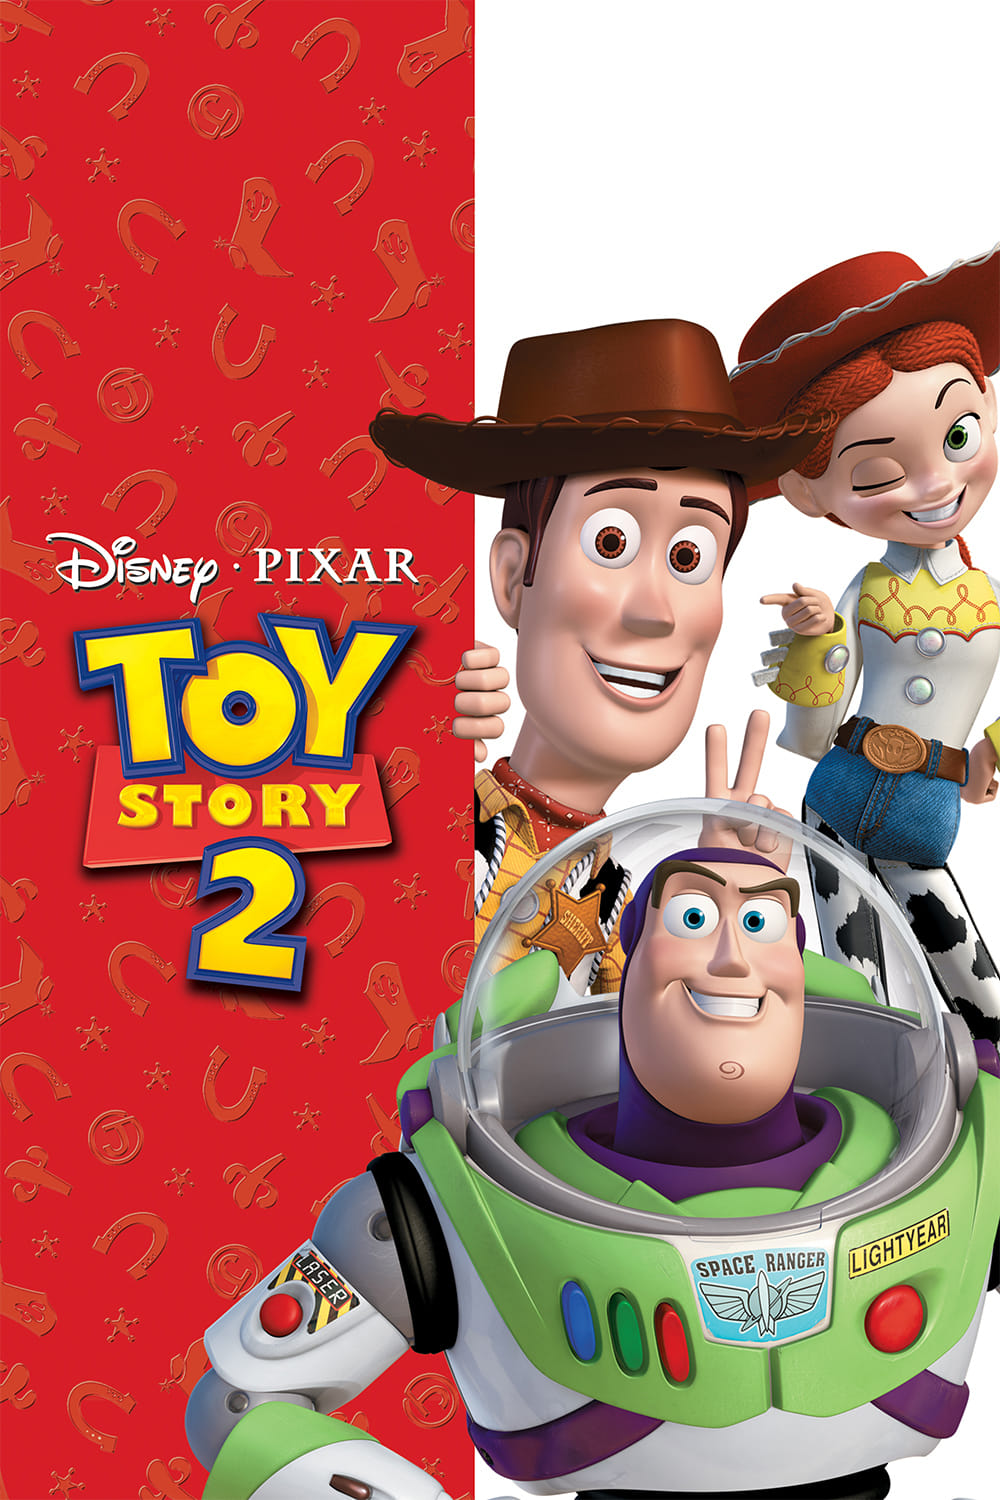 Toy Story Cracked Magazine: Toy Story 2 (1999) • Movies.film-cine.com